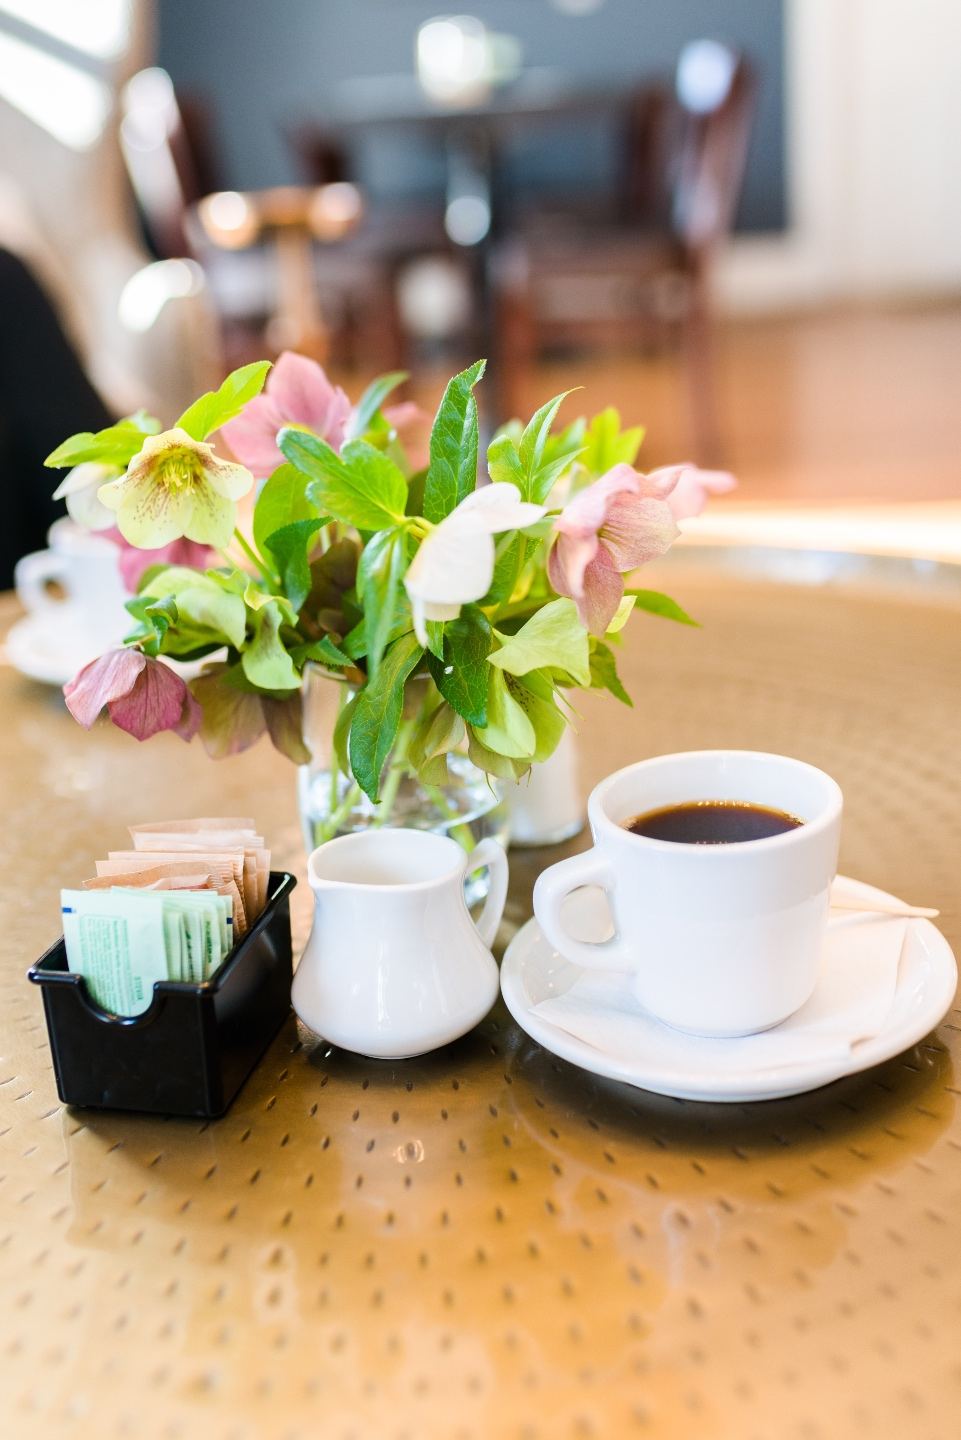 Places to Stay: The Colonial Inn in Hillsborough NC - I'm Fixin' To - @imfixintoblog |The Colonial Inn Hillsborough NC by popular NC travel blog, I'm Fixin' To: image of flowers in a vase next to a cup of coffee and sugar packets.